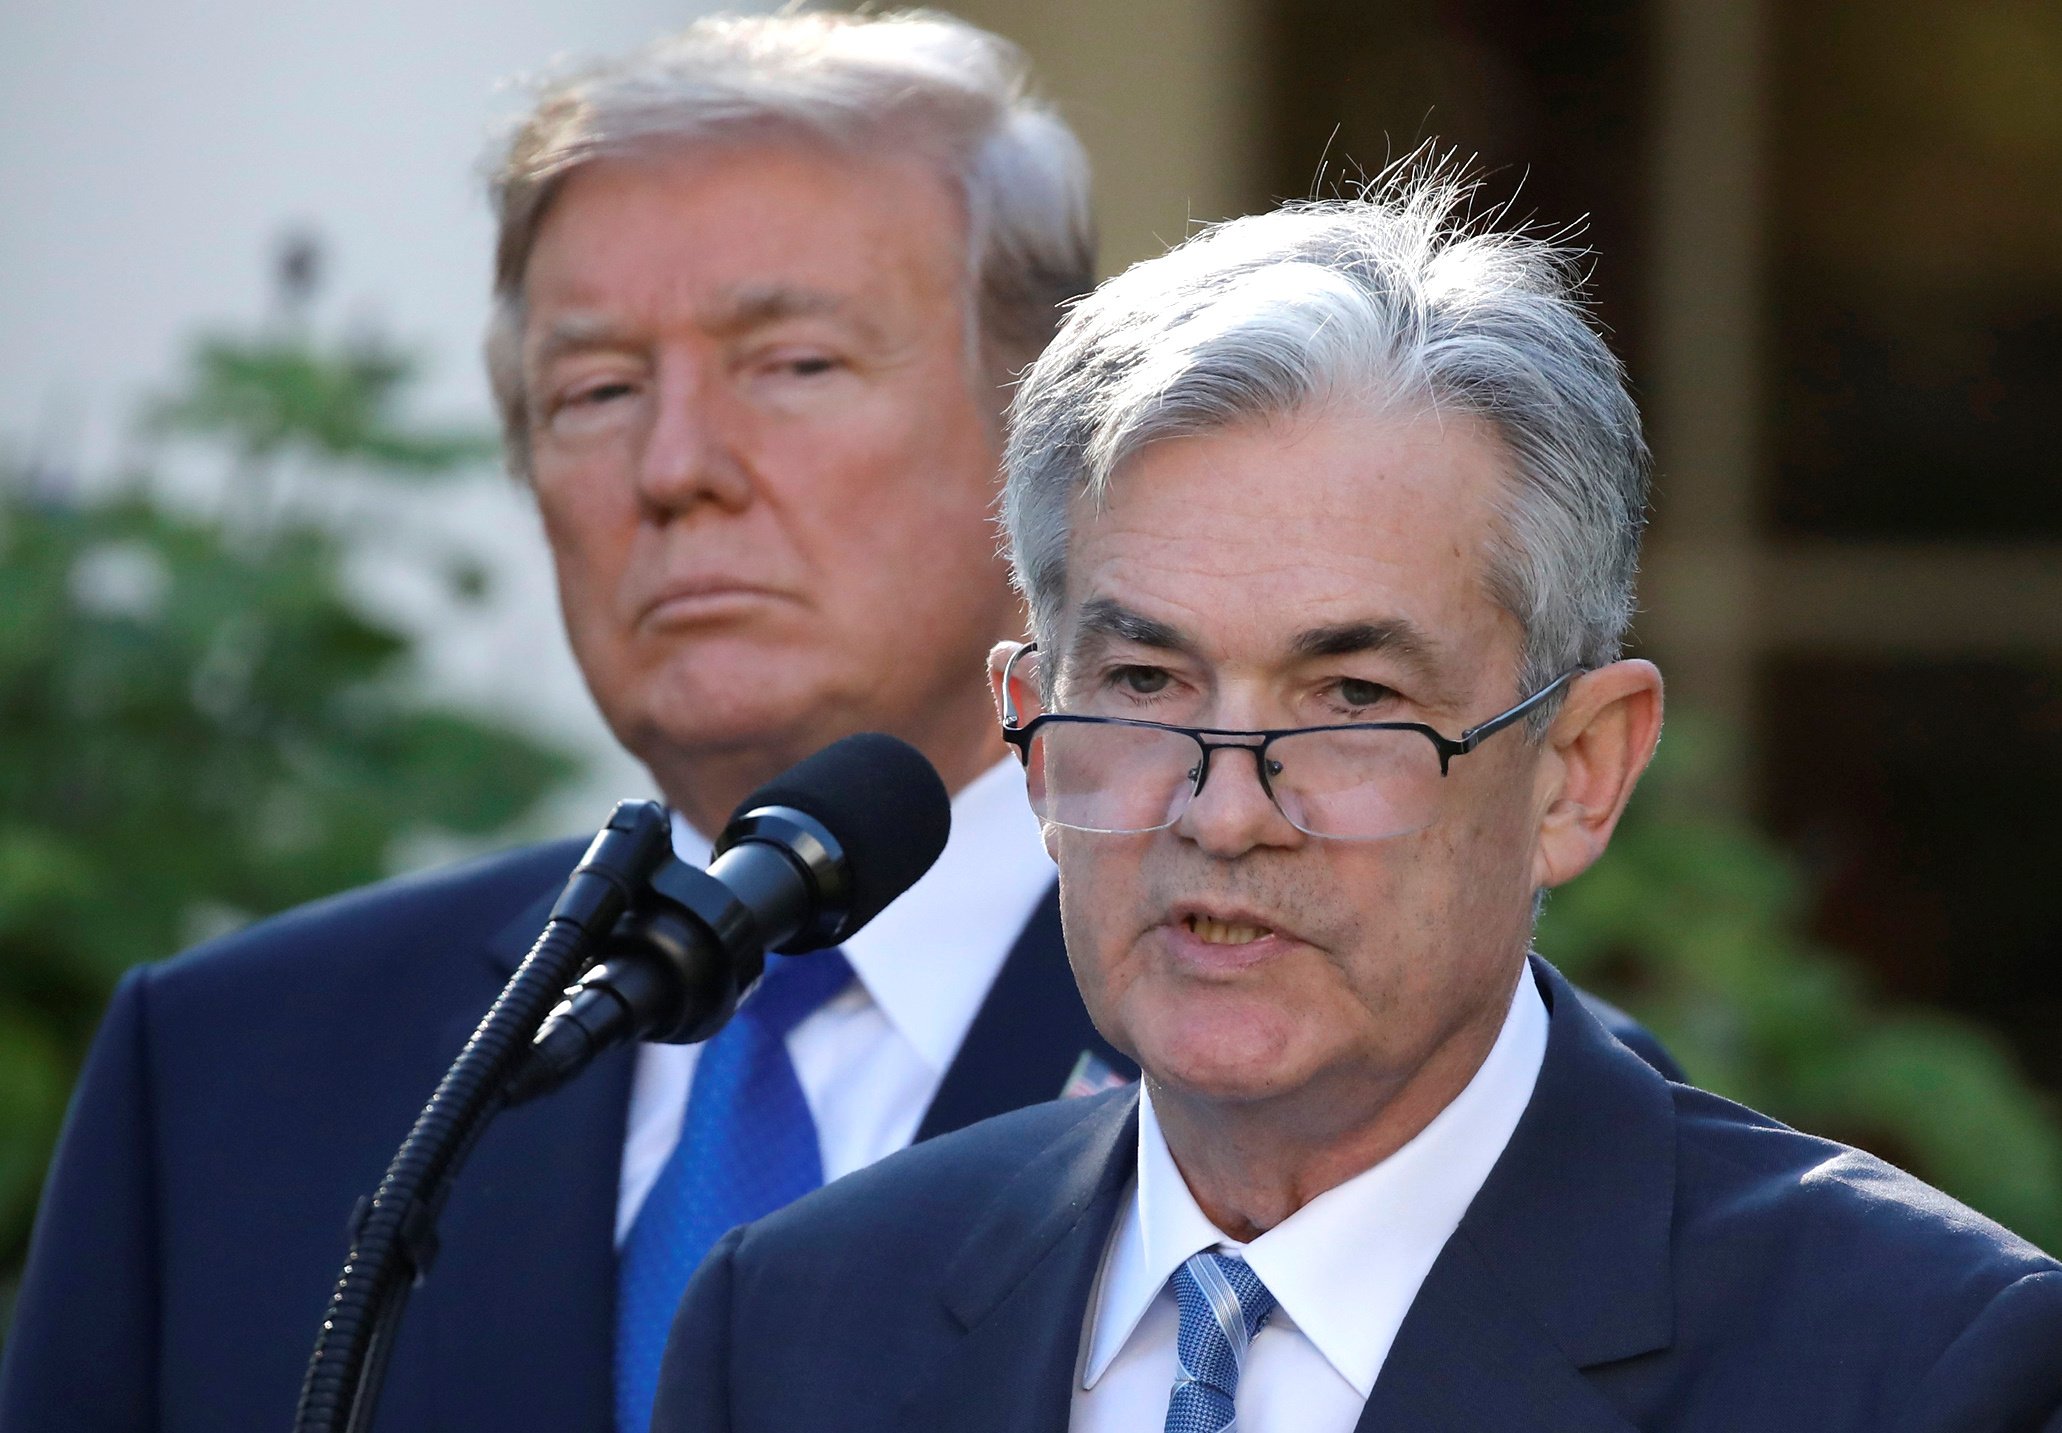 U.S. President Donald Trump looks on as Jerome Powell, his nominee to become chairman of the U.S. Federal Reserve, speaks at the White House in Washington, U.S., November 2, 2017. REUTERS/Carlos Barria - RC1D42CC0930